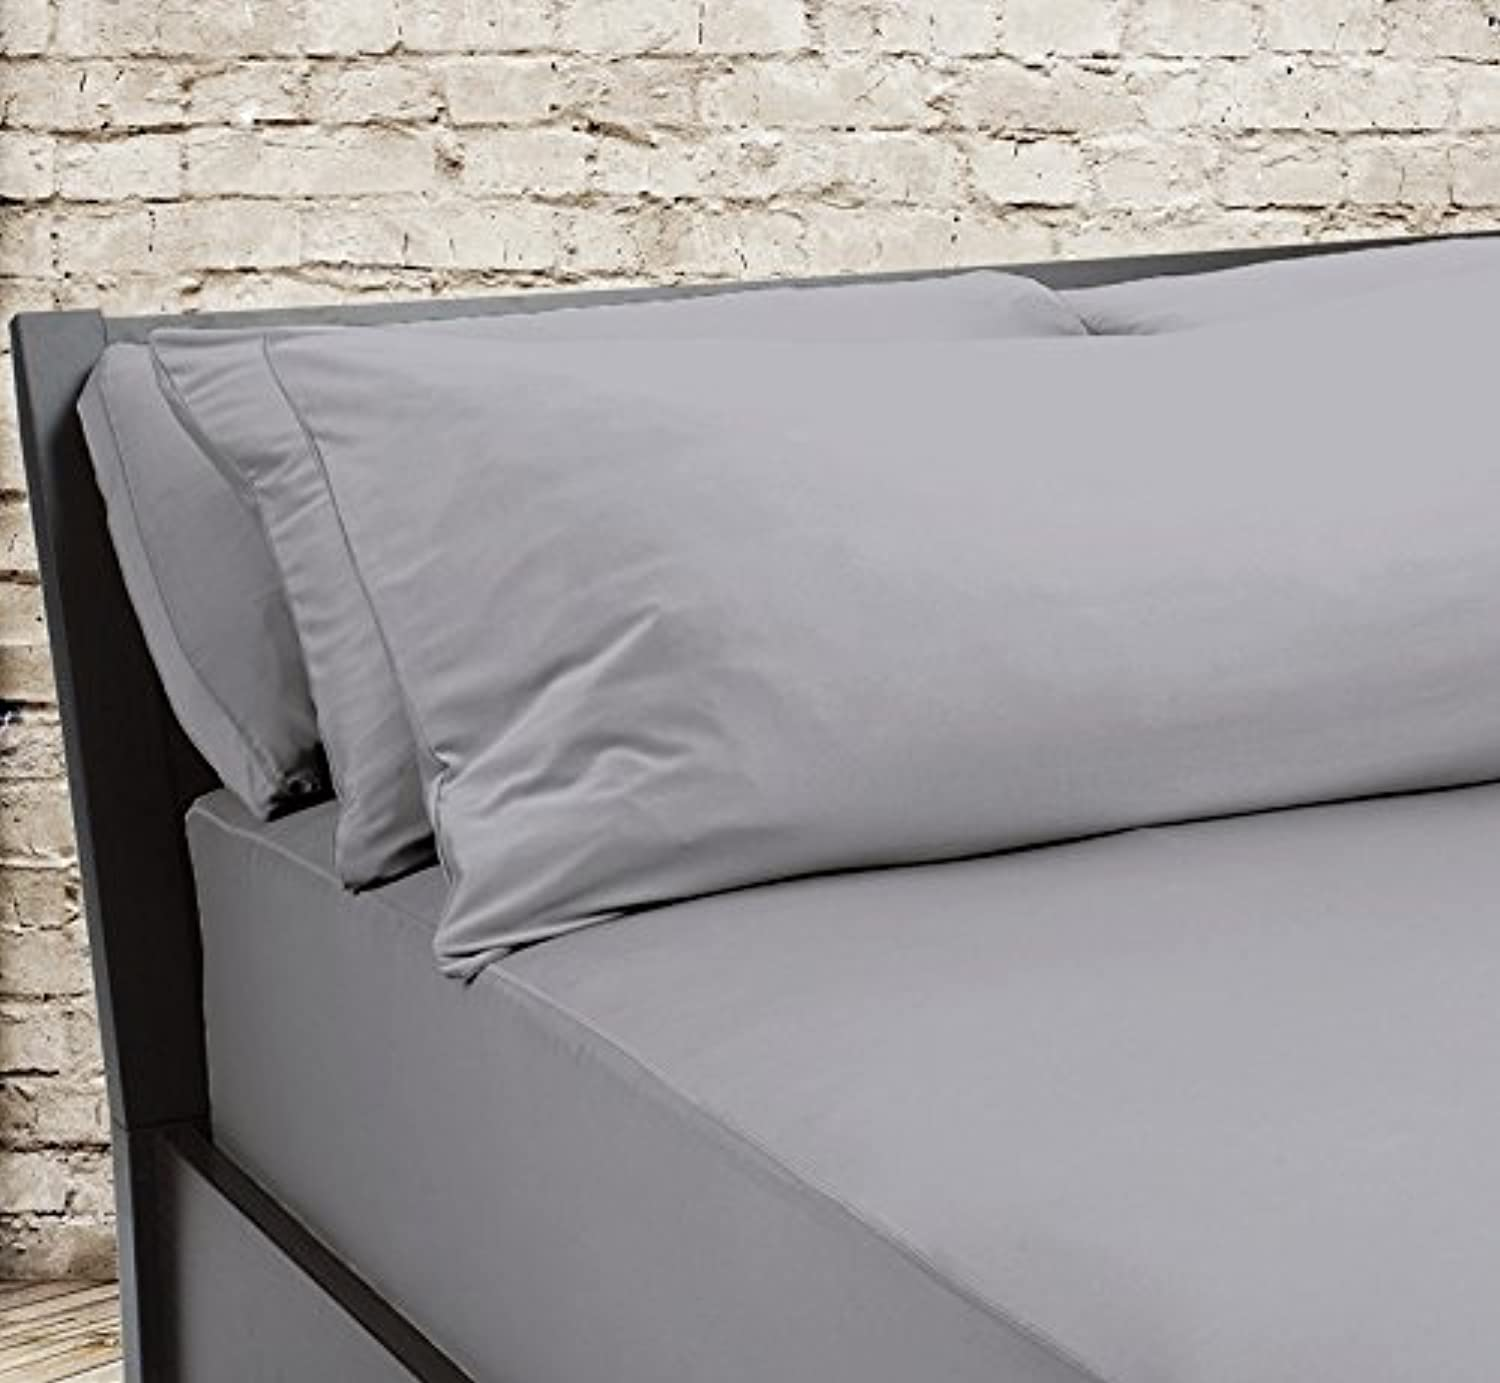 SHEEX – Original Performance Fitted Sheet, 1 (One) Fitted Sheet ONLY, Ultra-Soft Fabric Transfers Body Heat and Breathes Better Than Traditional Cotton, Graphite (King)